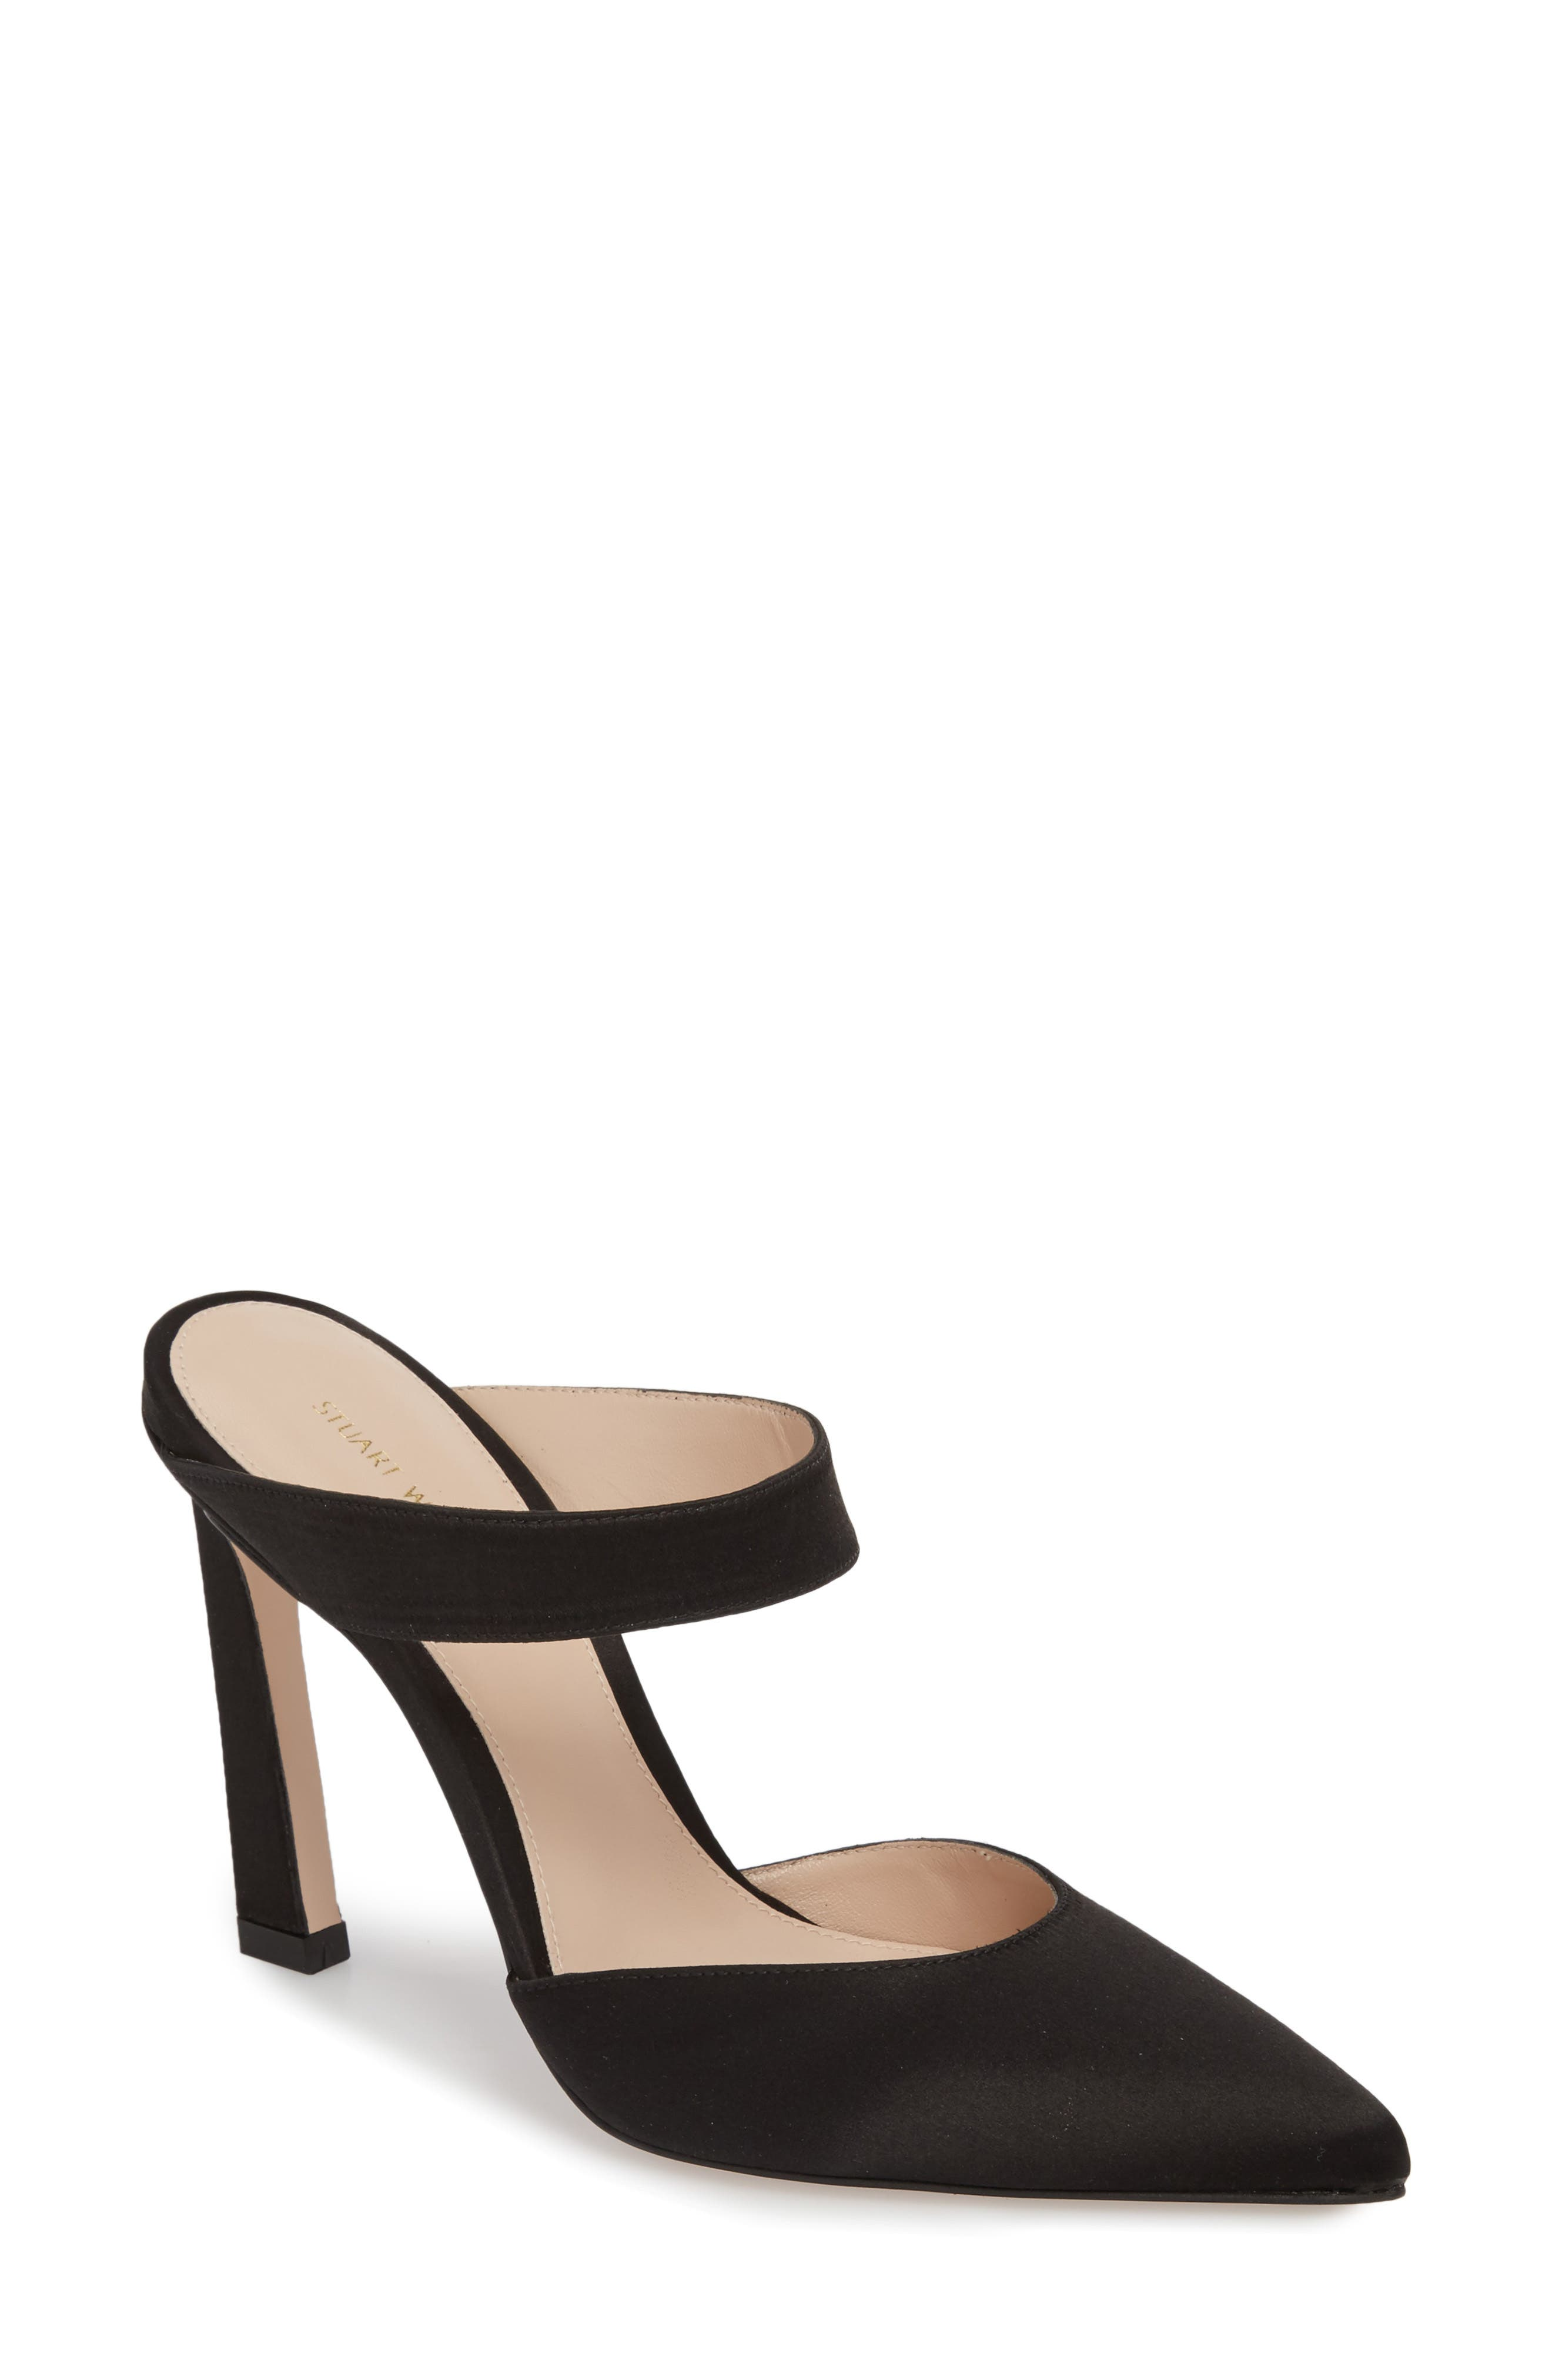 Event Pointy Toe Pump,                             Main thumbnail 1, color,                             002